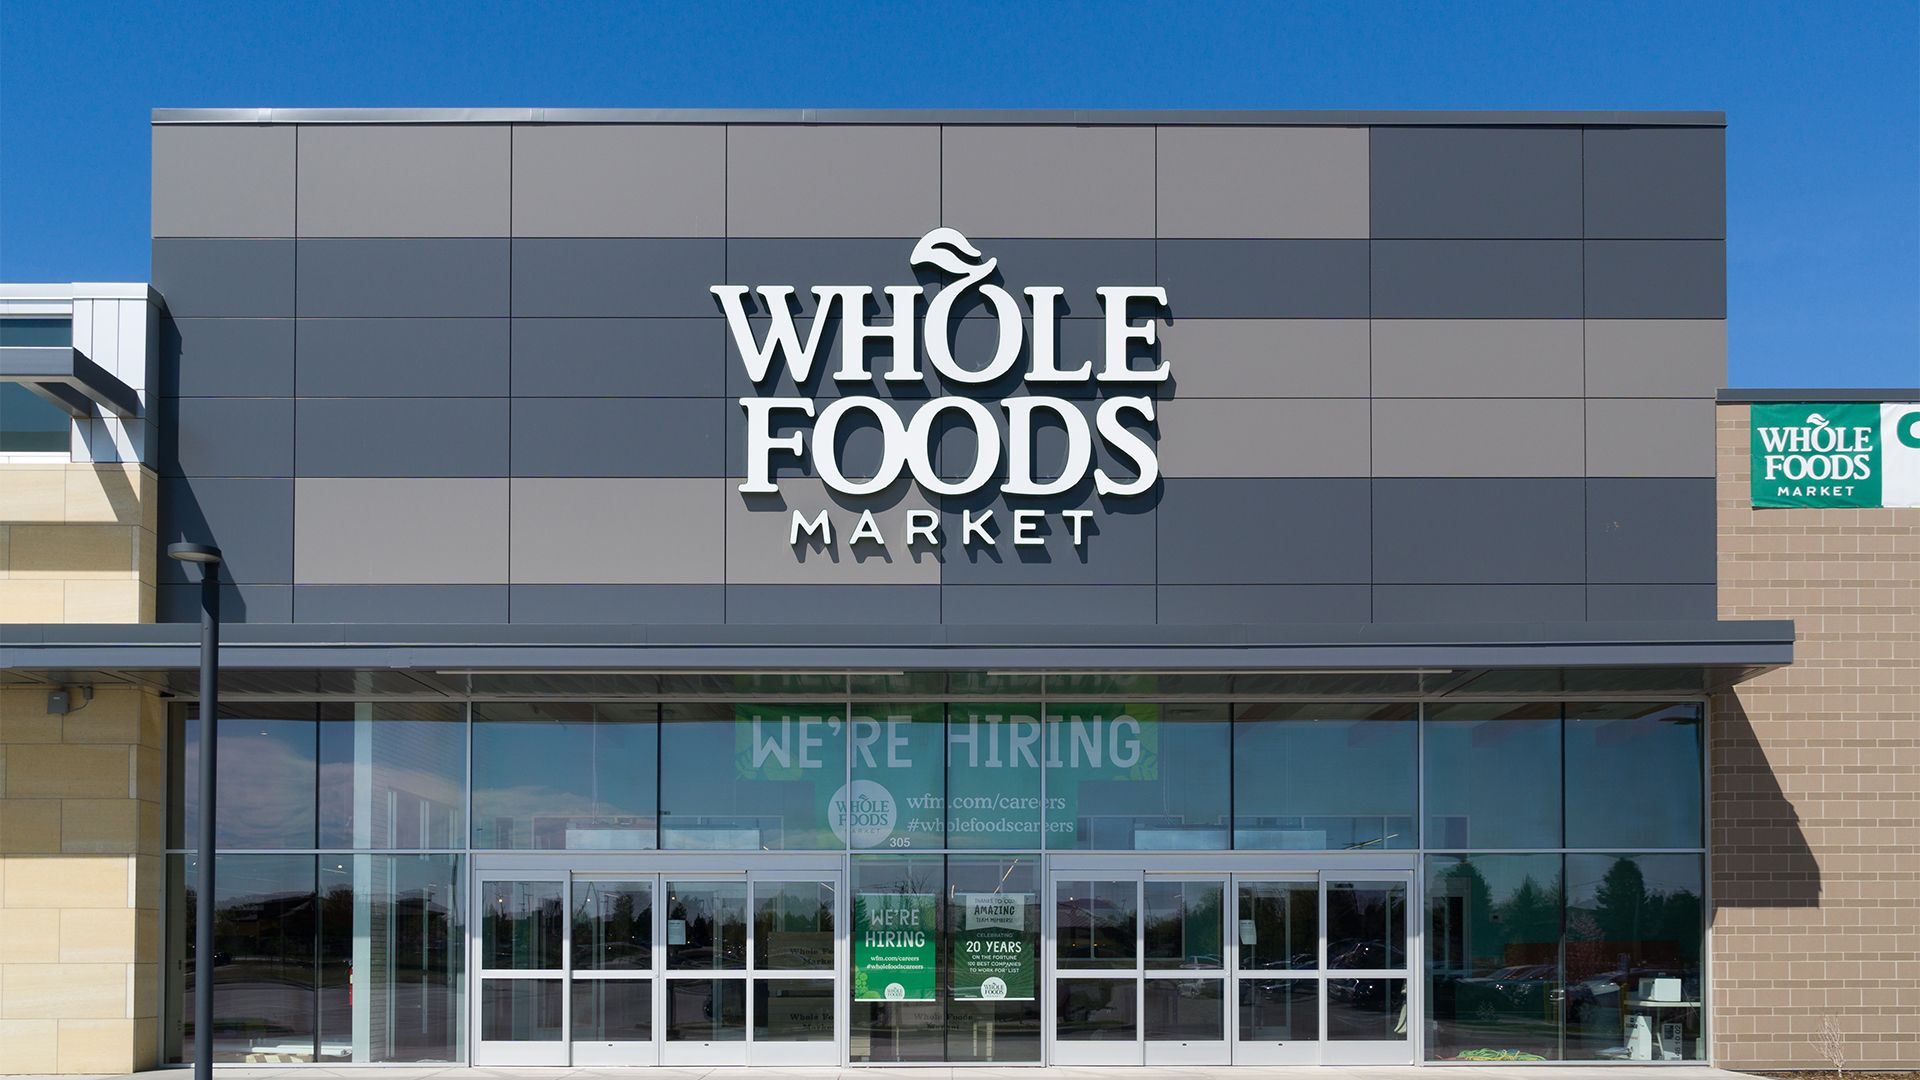 Whole Foods Discounts For Amazon Prime Members Will Fully